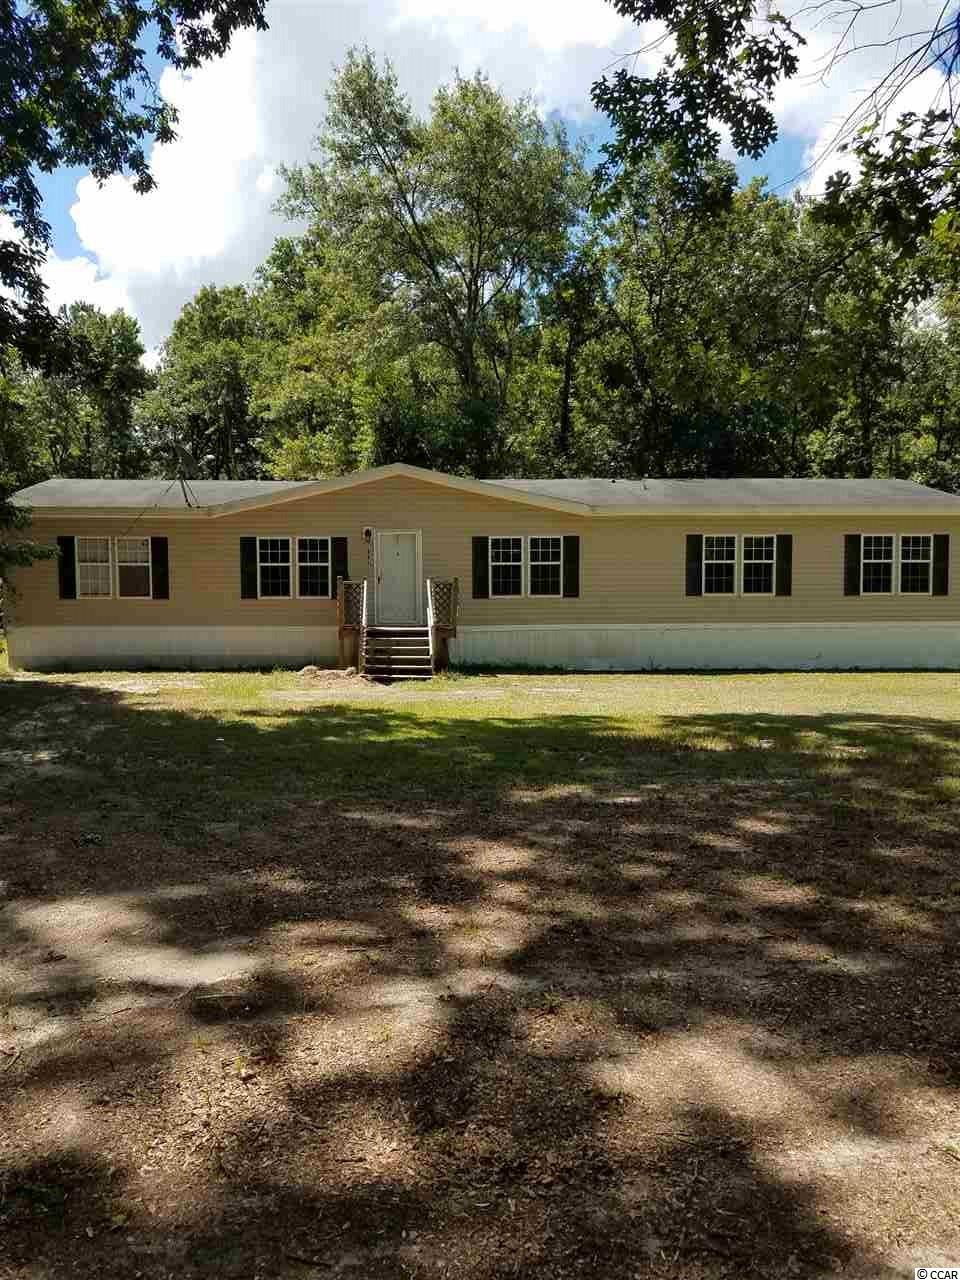 Enough room for the whole family and NO HOA!!!! Come check out this spacious 5 bedroom 3 bath home. This home offers a master bedroom with a garden tub and separate shower, a jack and jill bedroom, an open kitchen, dining room, a huge living and family room!!! It comes on 1 acre of land and is walking distance to the Waccamaw National Wildlife Refuge and the Pee Dee River. This home did not flood or get damaged during or after the Hurricane either!